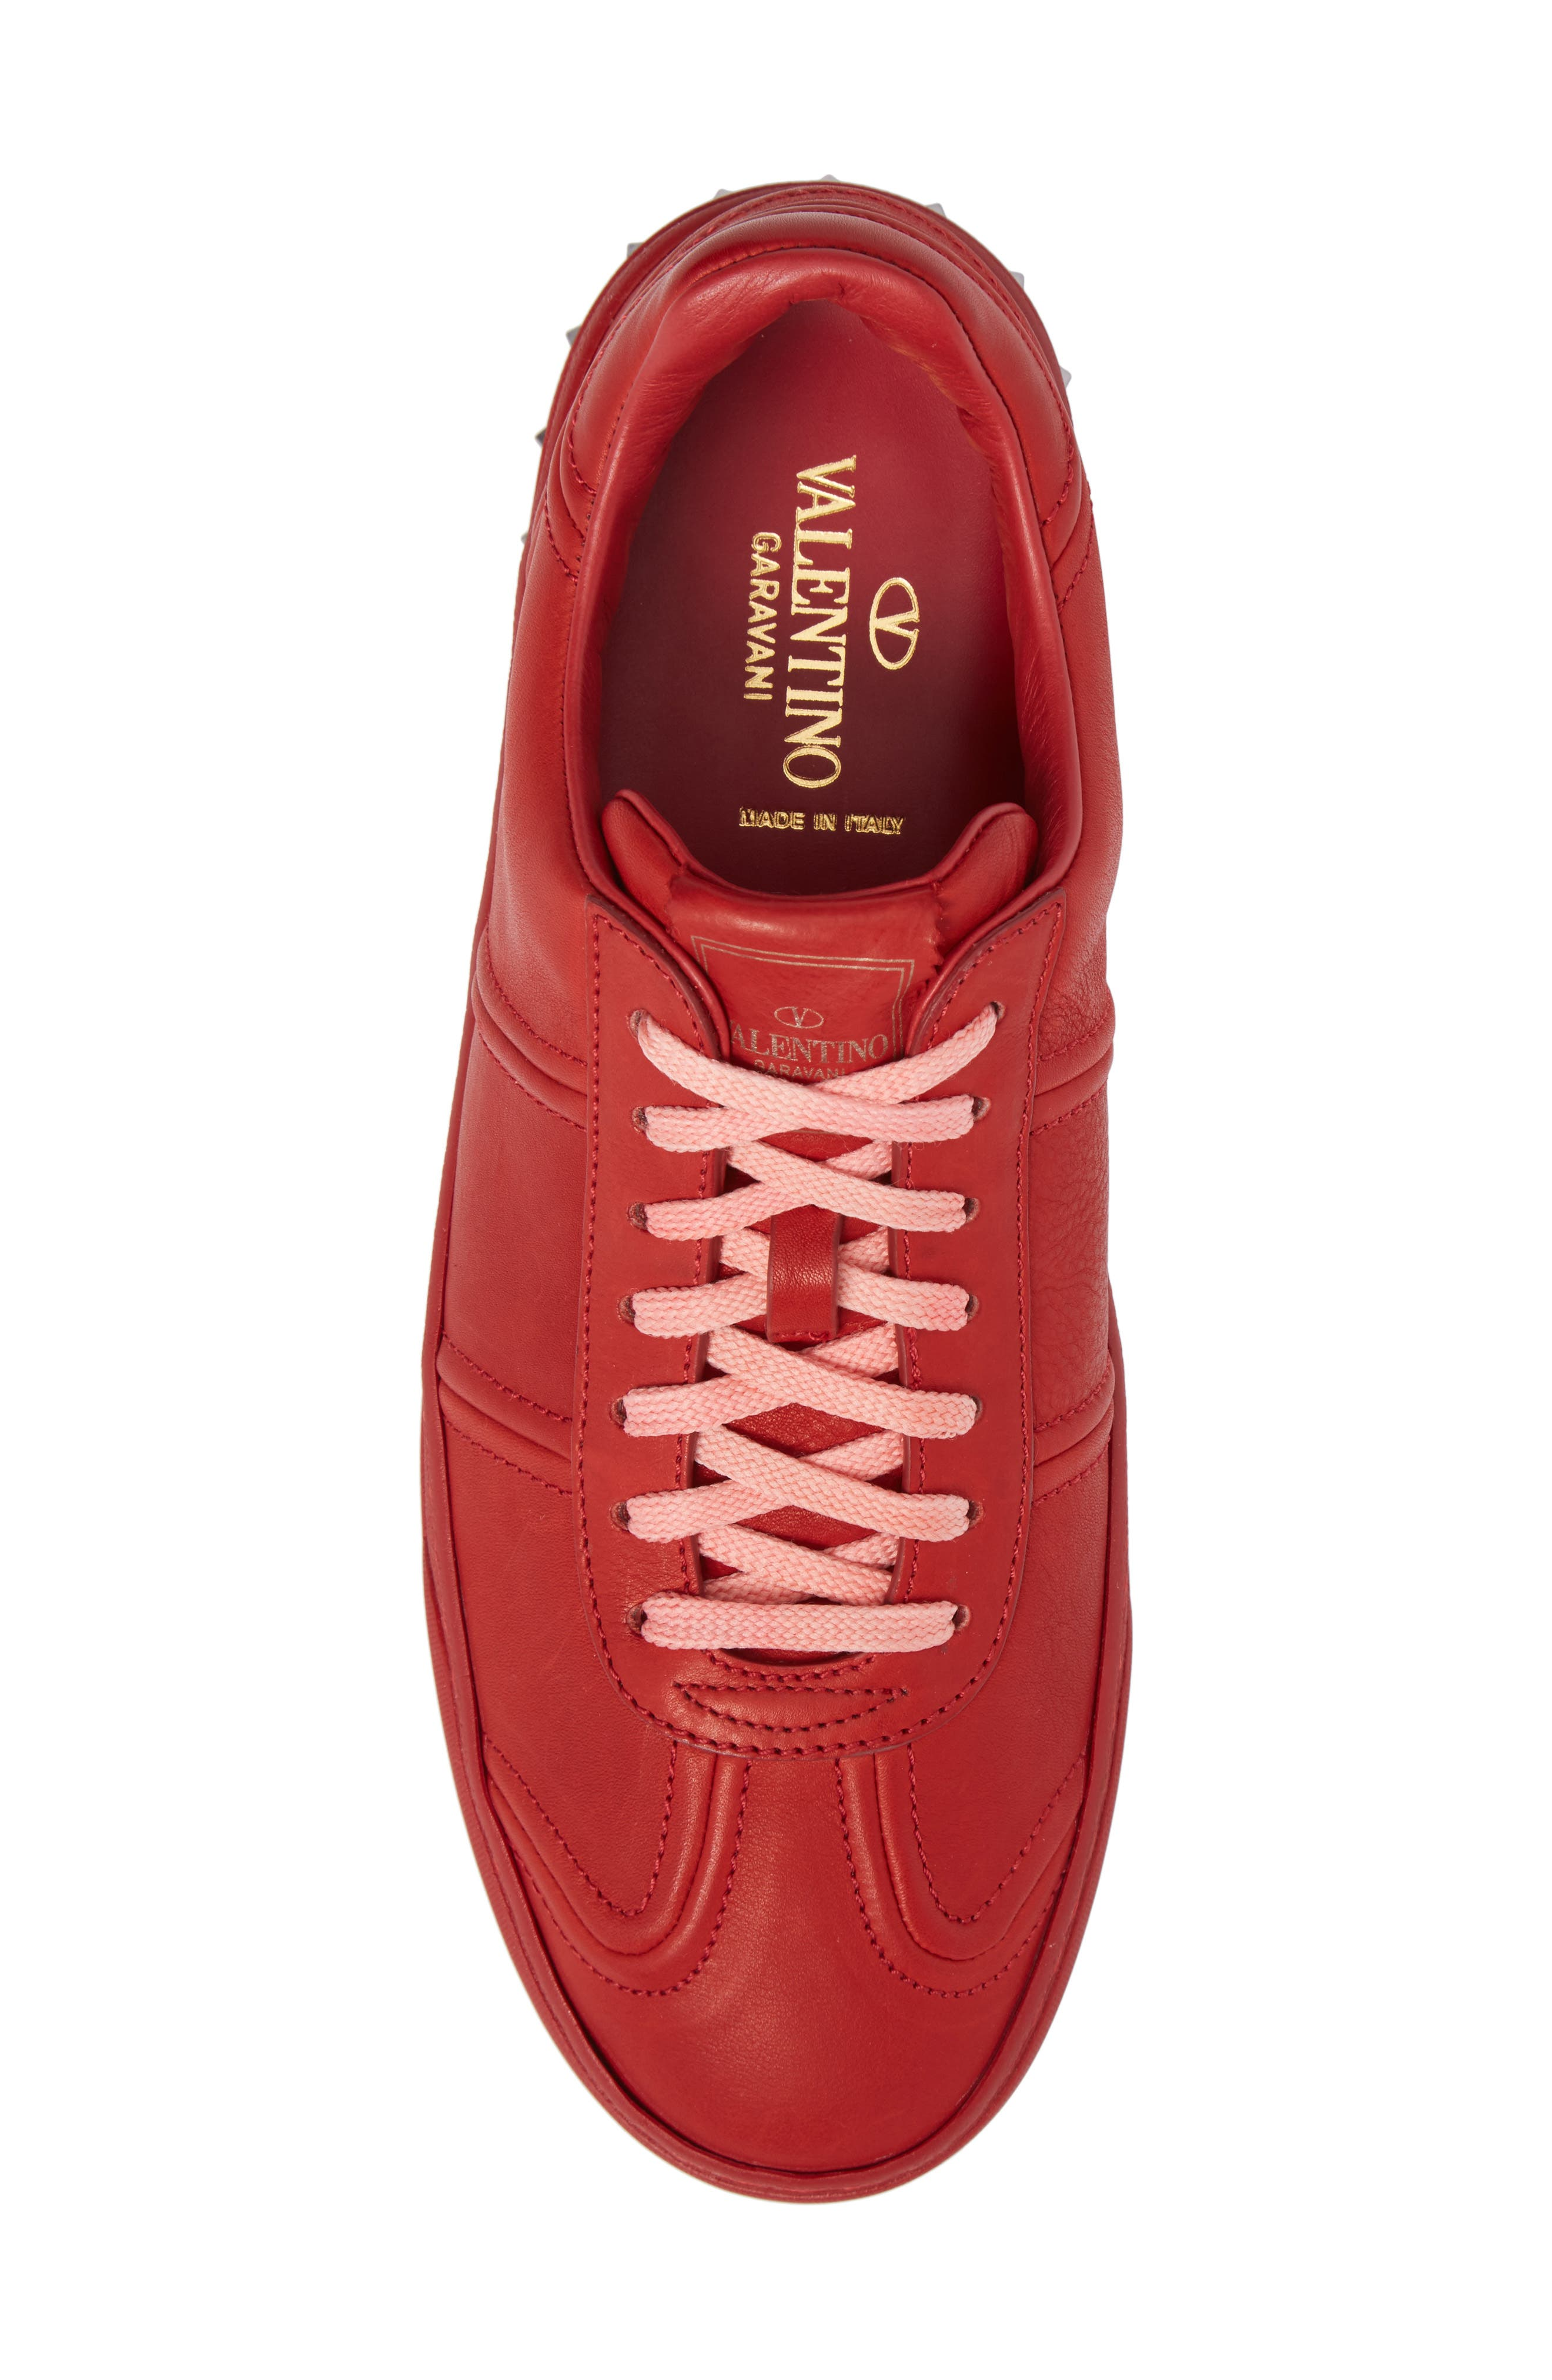 Fly Crew Sneaker,                             Alternate thumbnail 5, color,                             Rosso